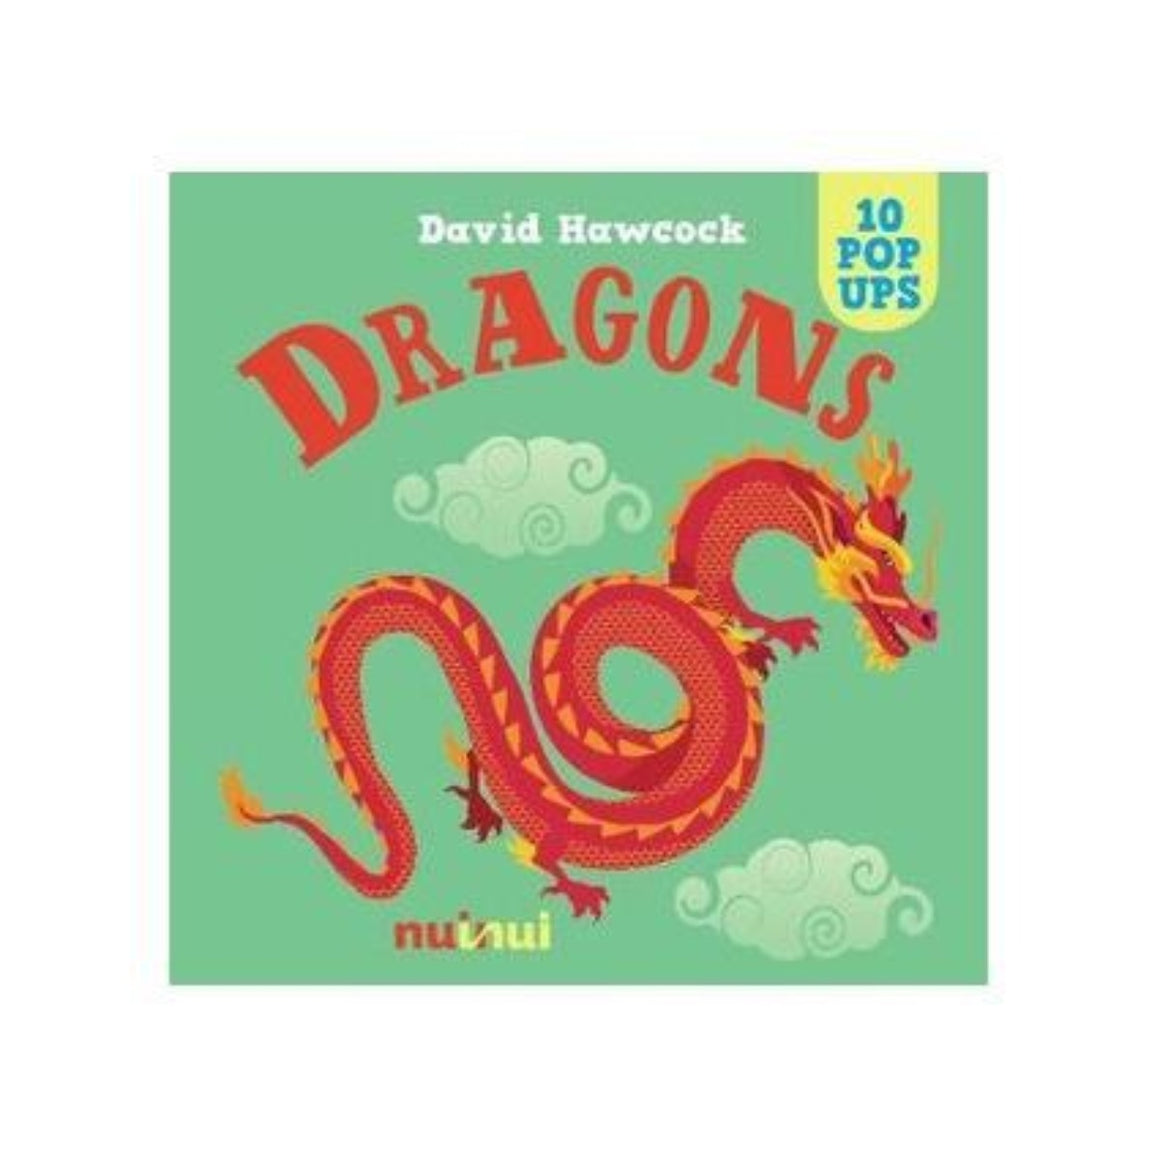 Book cover featuring a green background with a graphic illustration of a traditional red chinese dragon